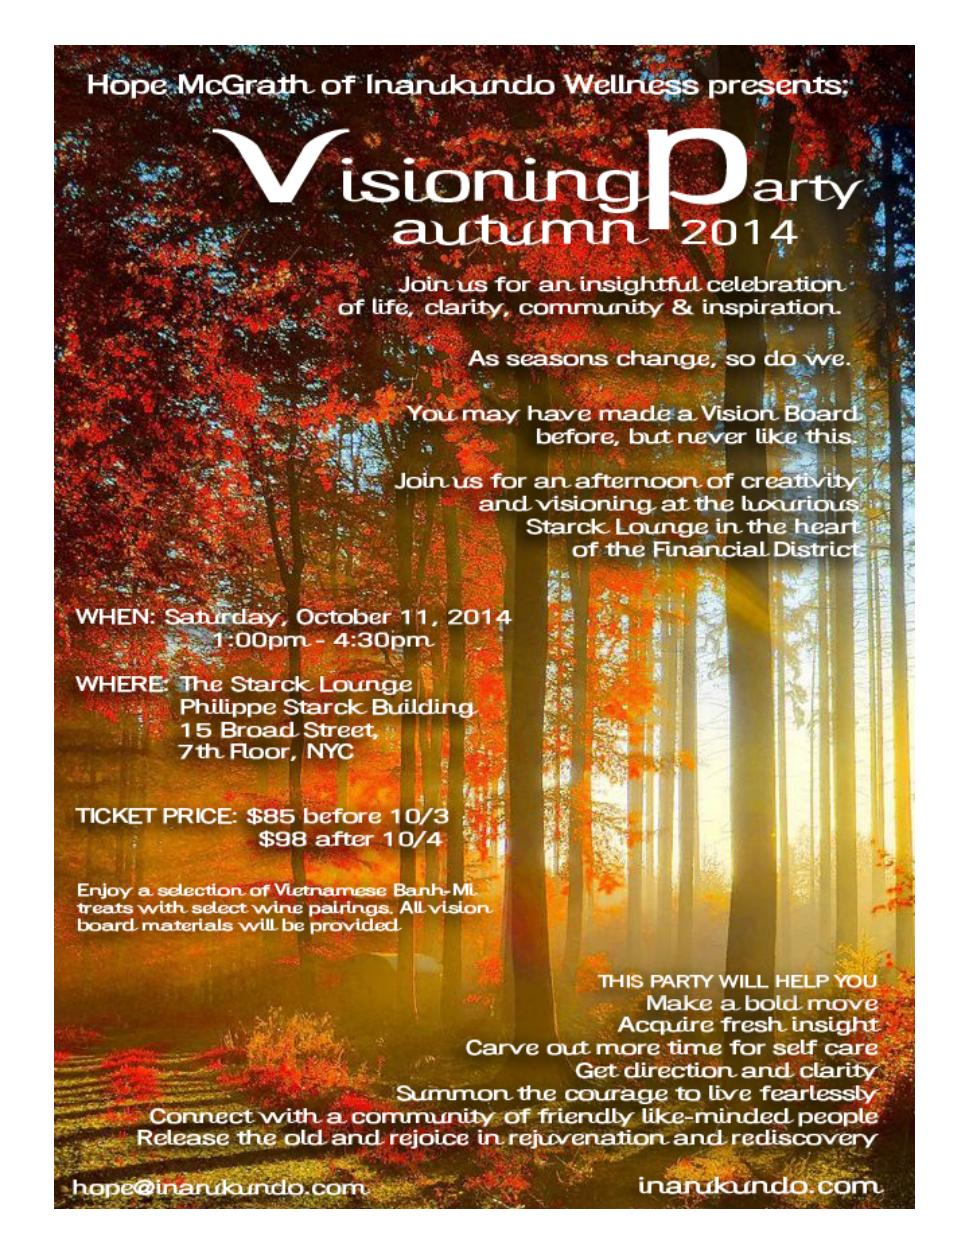 "What exactly is visioning you ask?  Check out my past article on the  'Six Keys to Powerful Visioning.""    The upcoming Visioning Party Autumn 2014 on October 11th is a fun opportunity to revisit your youth or engage in some rediscovery and have fun sipping wine, vibing to chill music, escaping with guided visualizations and mini meditations plus creating a 'mood board for your life.'  Now for even more enlightenment, our party is taking place in a super chic private lounge, designed by Philippe Starck, with rooftop access and breathtaking city views. Not a bad place to dream big and be inspired to take action to live it.  For guests that didn't make it to the first Breakthrough Visioning Party, you can get a glimpse of my reflections in my article  'The Beauty of Community.'   Here's what's been said from the first ever Breakthrough Visioning Party earlier in the year....  My experience at The Breakthrough Visioning Party was self-evaluative, creative, eye-opening, fun and multicultural on all levels. Even though I am entering into a lifelong partnership, I discovered I have many individual goals that I would like to accomplish. This is necessary to my personal development and growth.  - Jodi Lin Weiner, Fashion & Lifestyle Publicist     ""When sifting through all the magazines, the best approach was to not overthink it and even let my subconscious took over sometimes. I was grabbing at imagery without fully knowing the ""why."" After doing the beginning exercises I felt like I was able to uncover a deeper part of my greater vision. Once things began being glued to the page that vision of my future life which at times was unclear to me, began to take shape.    My life totally changed after attending the Visioning Party. I was READY for some big changes to happen and I found the biggest shift was actually taking action. Sometimes when vision boarding I've created these lofty pieces and then just expected everything to magically come to fruition. But if you really want something to change in your life it takes a lot of WORK. There's an art of attention that you have to give yourself and your life in order for the magic to happen. The biggest shift from Hope's Visioning Party was creating the board and then setting out to fly.  The experience was a   brain squeeze, yet transformative, inspiring, fluid and powerful! ""    -  Lorenna Gomez- Sanchez , Associate Photo Editor, Billboard Magazine     ""Hope brings her stylish sensibility to everything she does. To be part of Hope's tribe means you are part of something truly unique. Her events are not to be missed. In her presence, you feel more joyful and open, like you're poised for greatness.""  - Amanda Berlin, Communications Consultant        *** I would love for you to share this evite with your friends that you feel would like to:     Make a bold move    Acquire fresh insight    Indulge in more self-care    Summon the courage to live fearlessly    Connect with like-minded cool people    Release the old and rejoice in rediscovery"